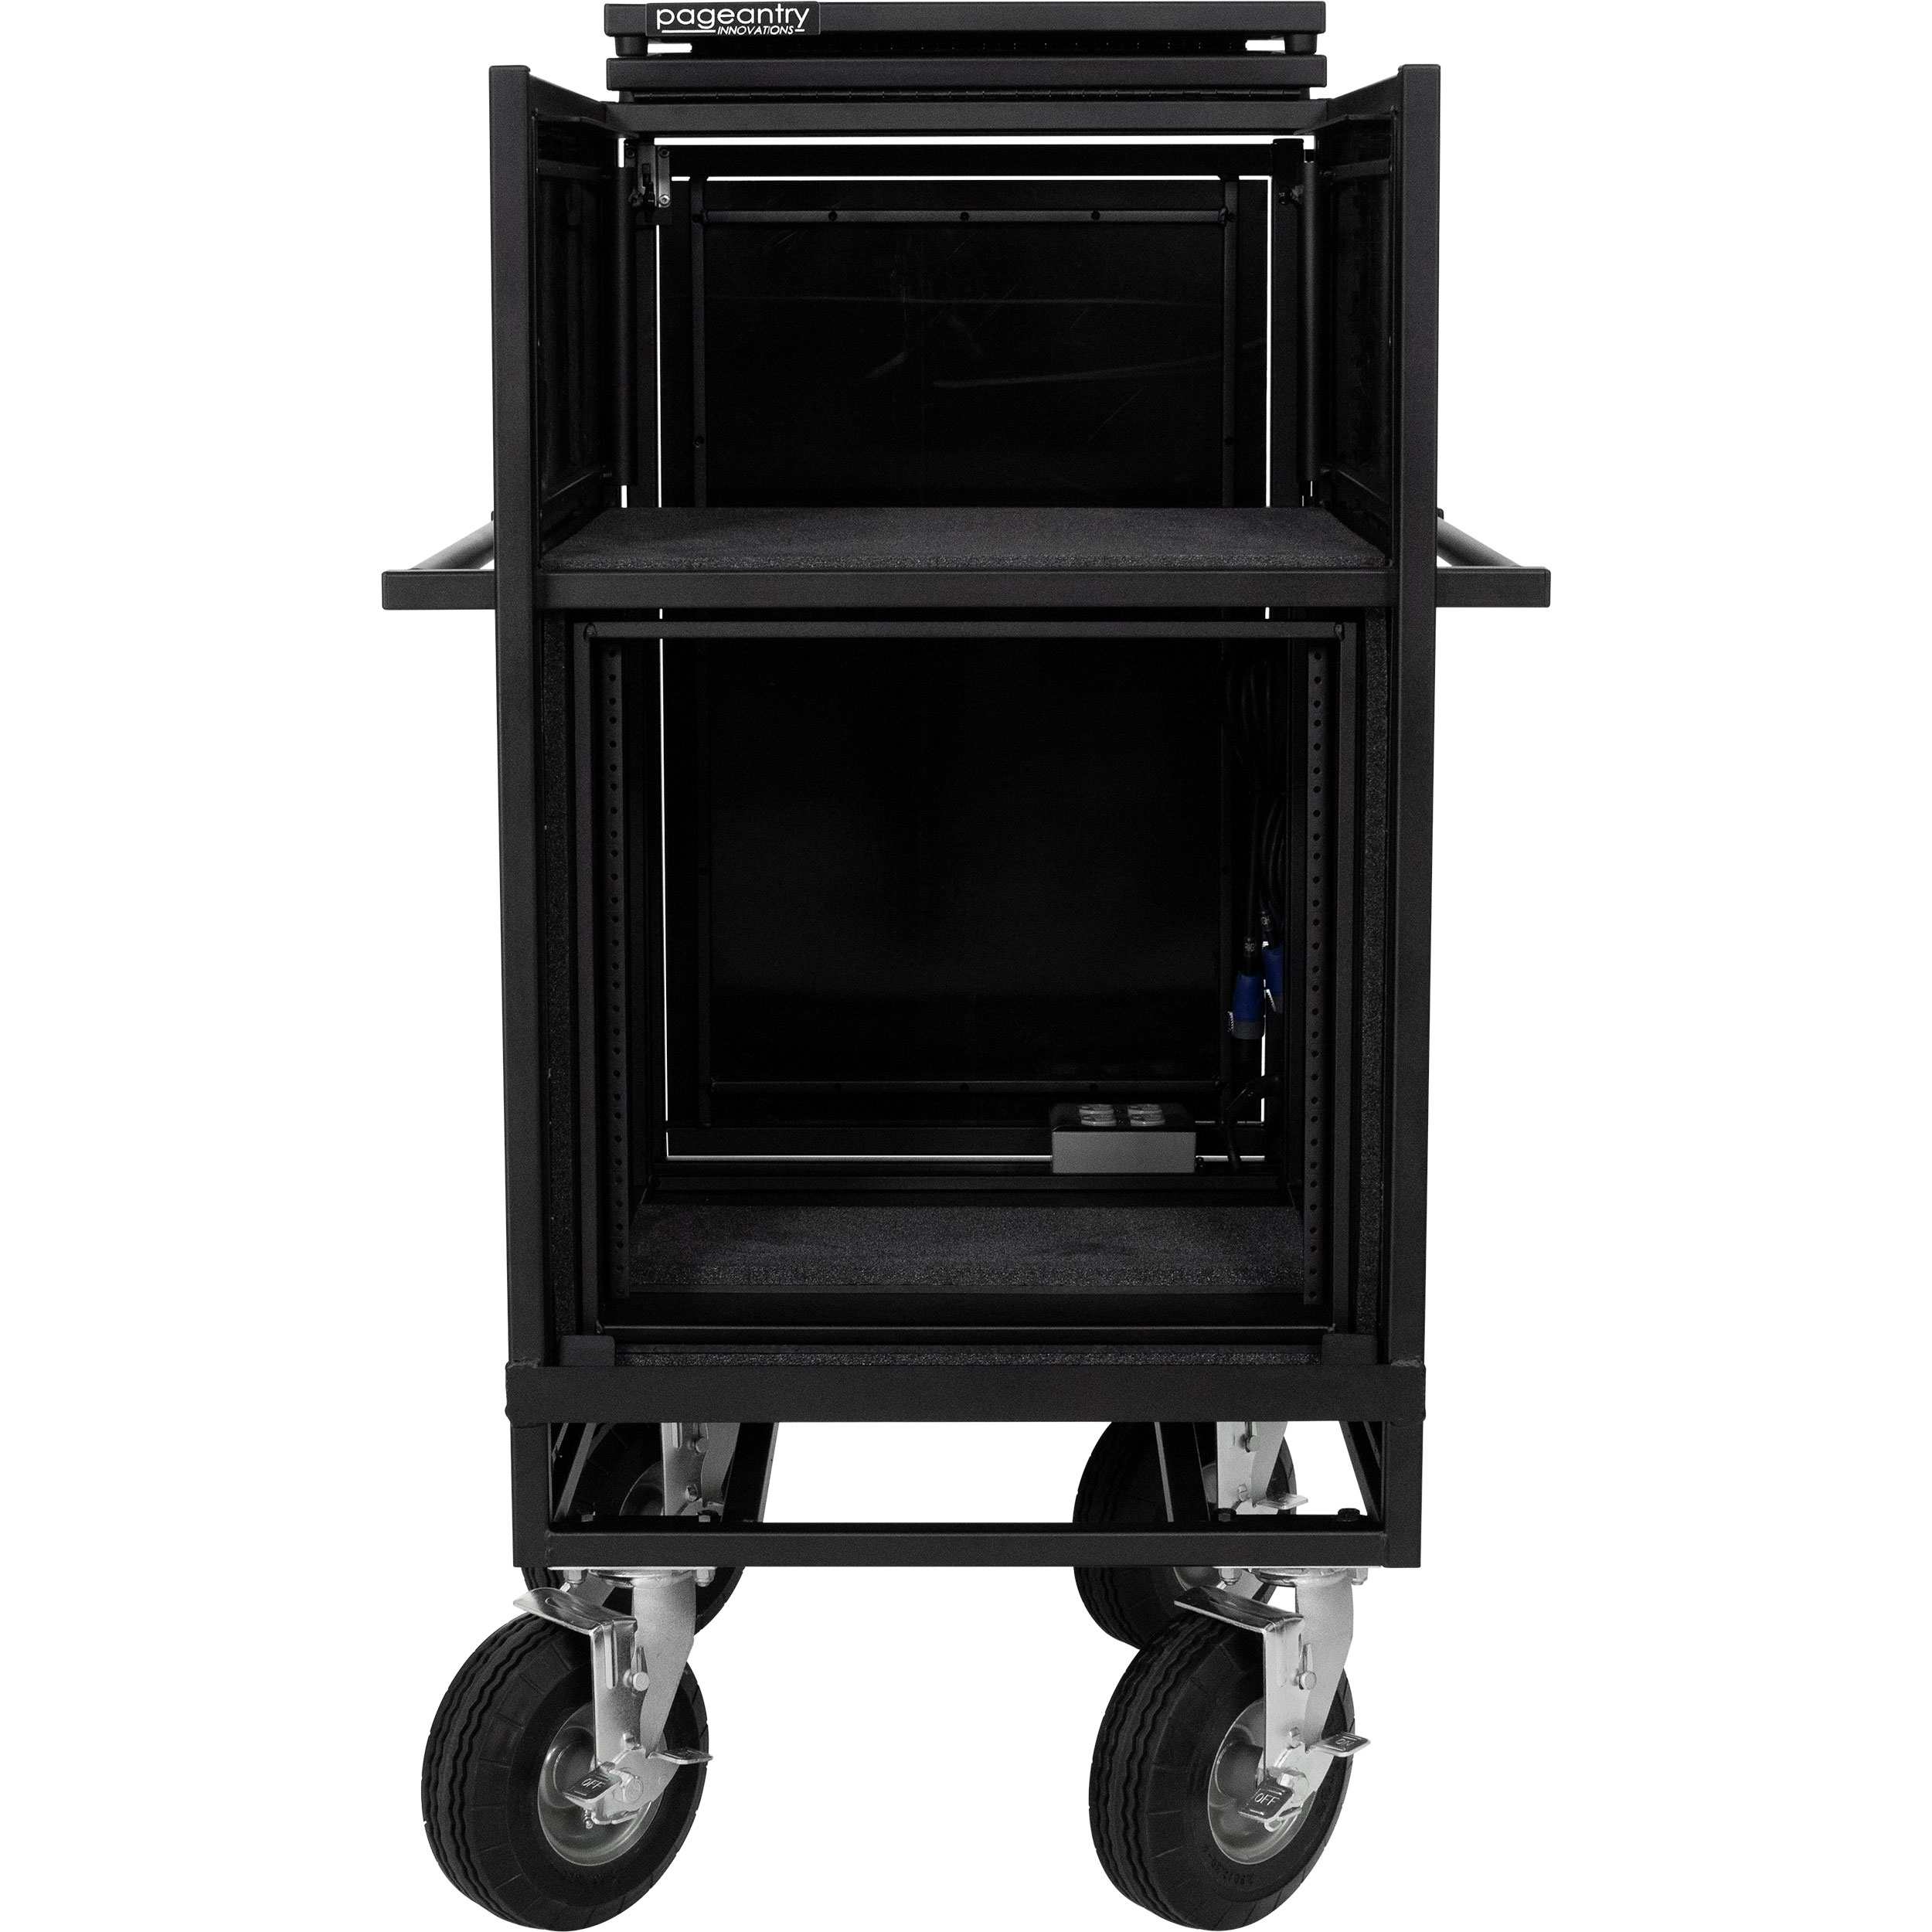 Pageantry Innovations Stealth Series Single Mixer Cart with Bi-Fold Top Cover